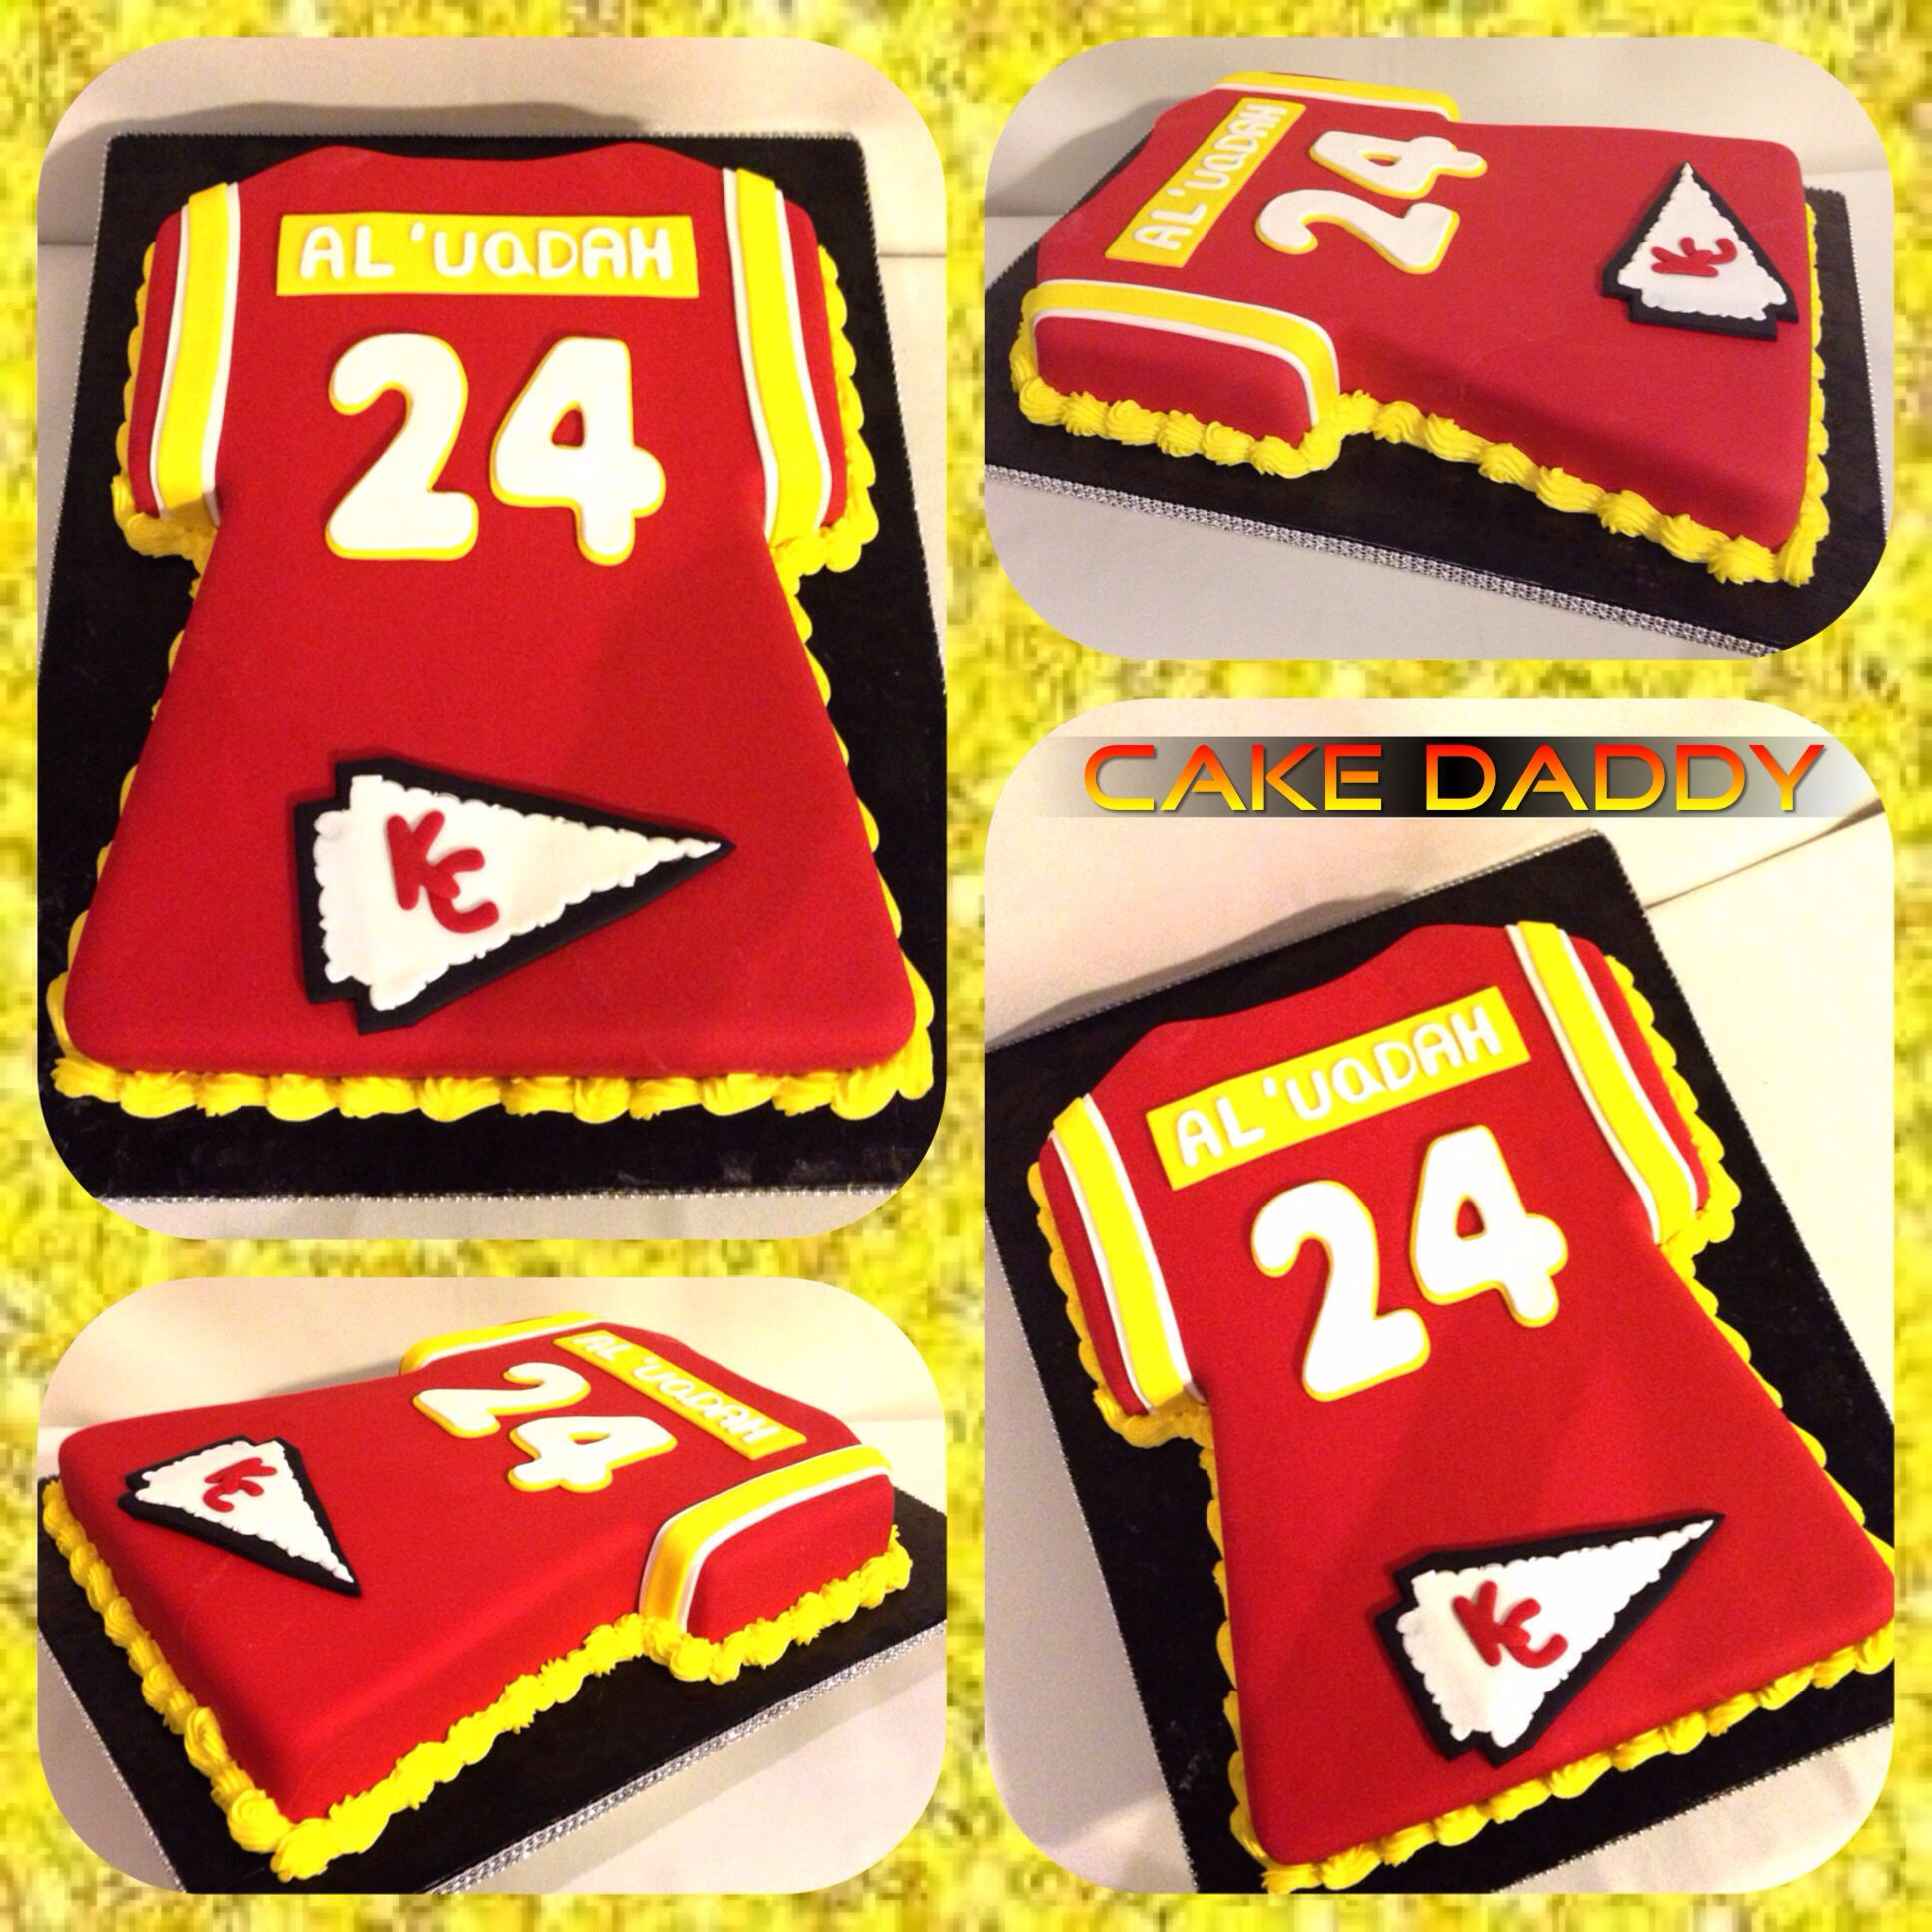 Swell Kansas City Chiefs Jersey Cake Sports Themed Cakes Themed Birthday Cards Printable Opercafe Filternl